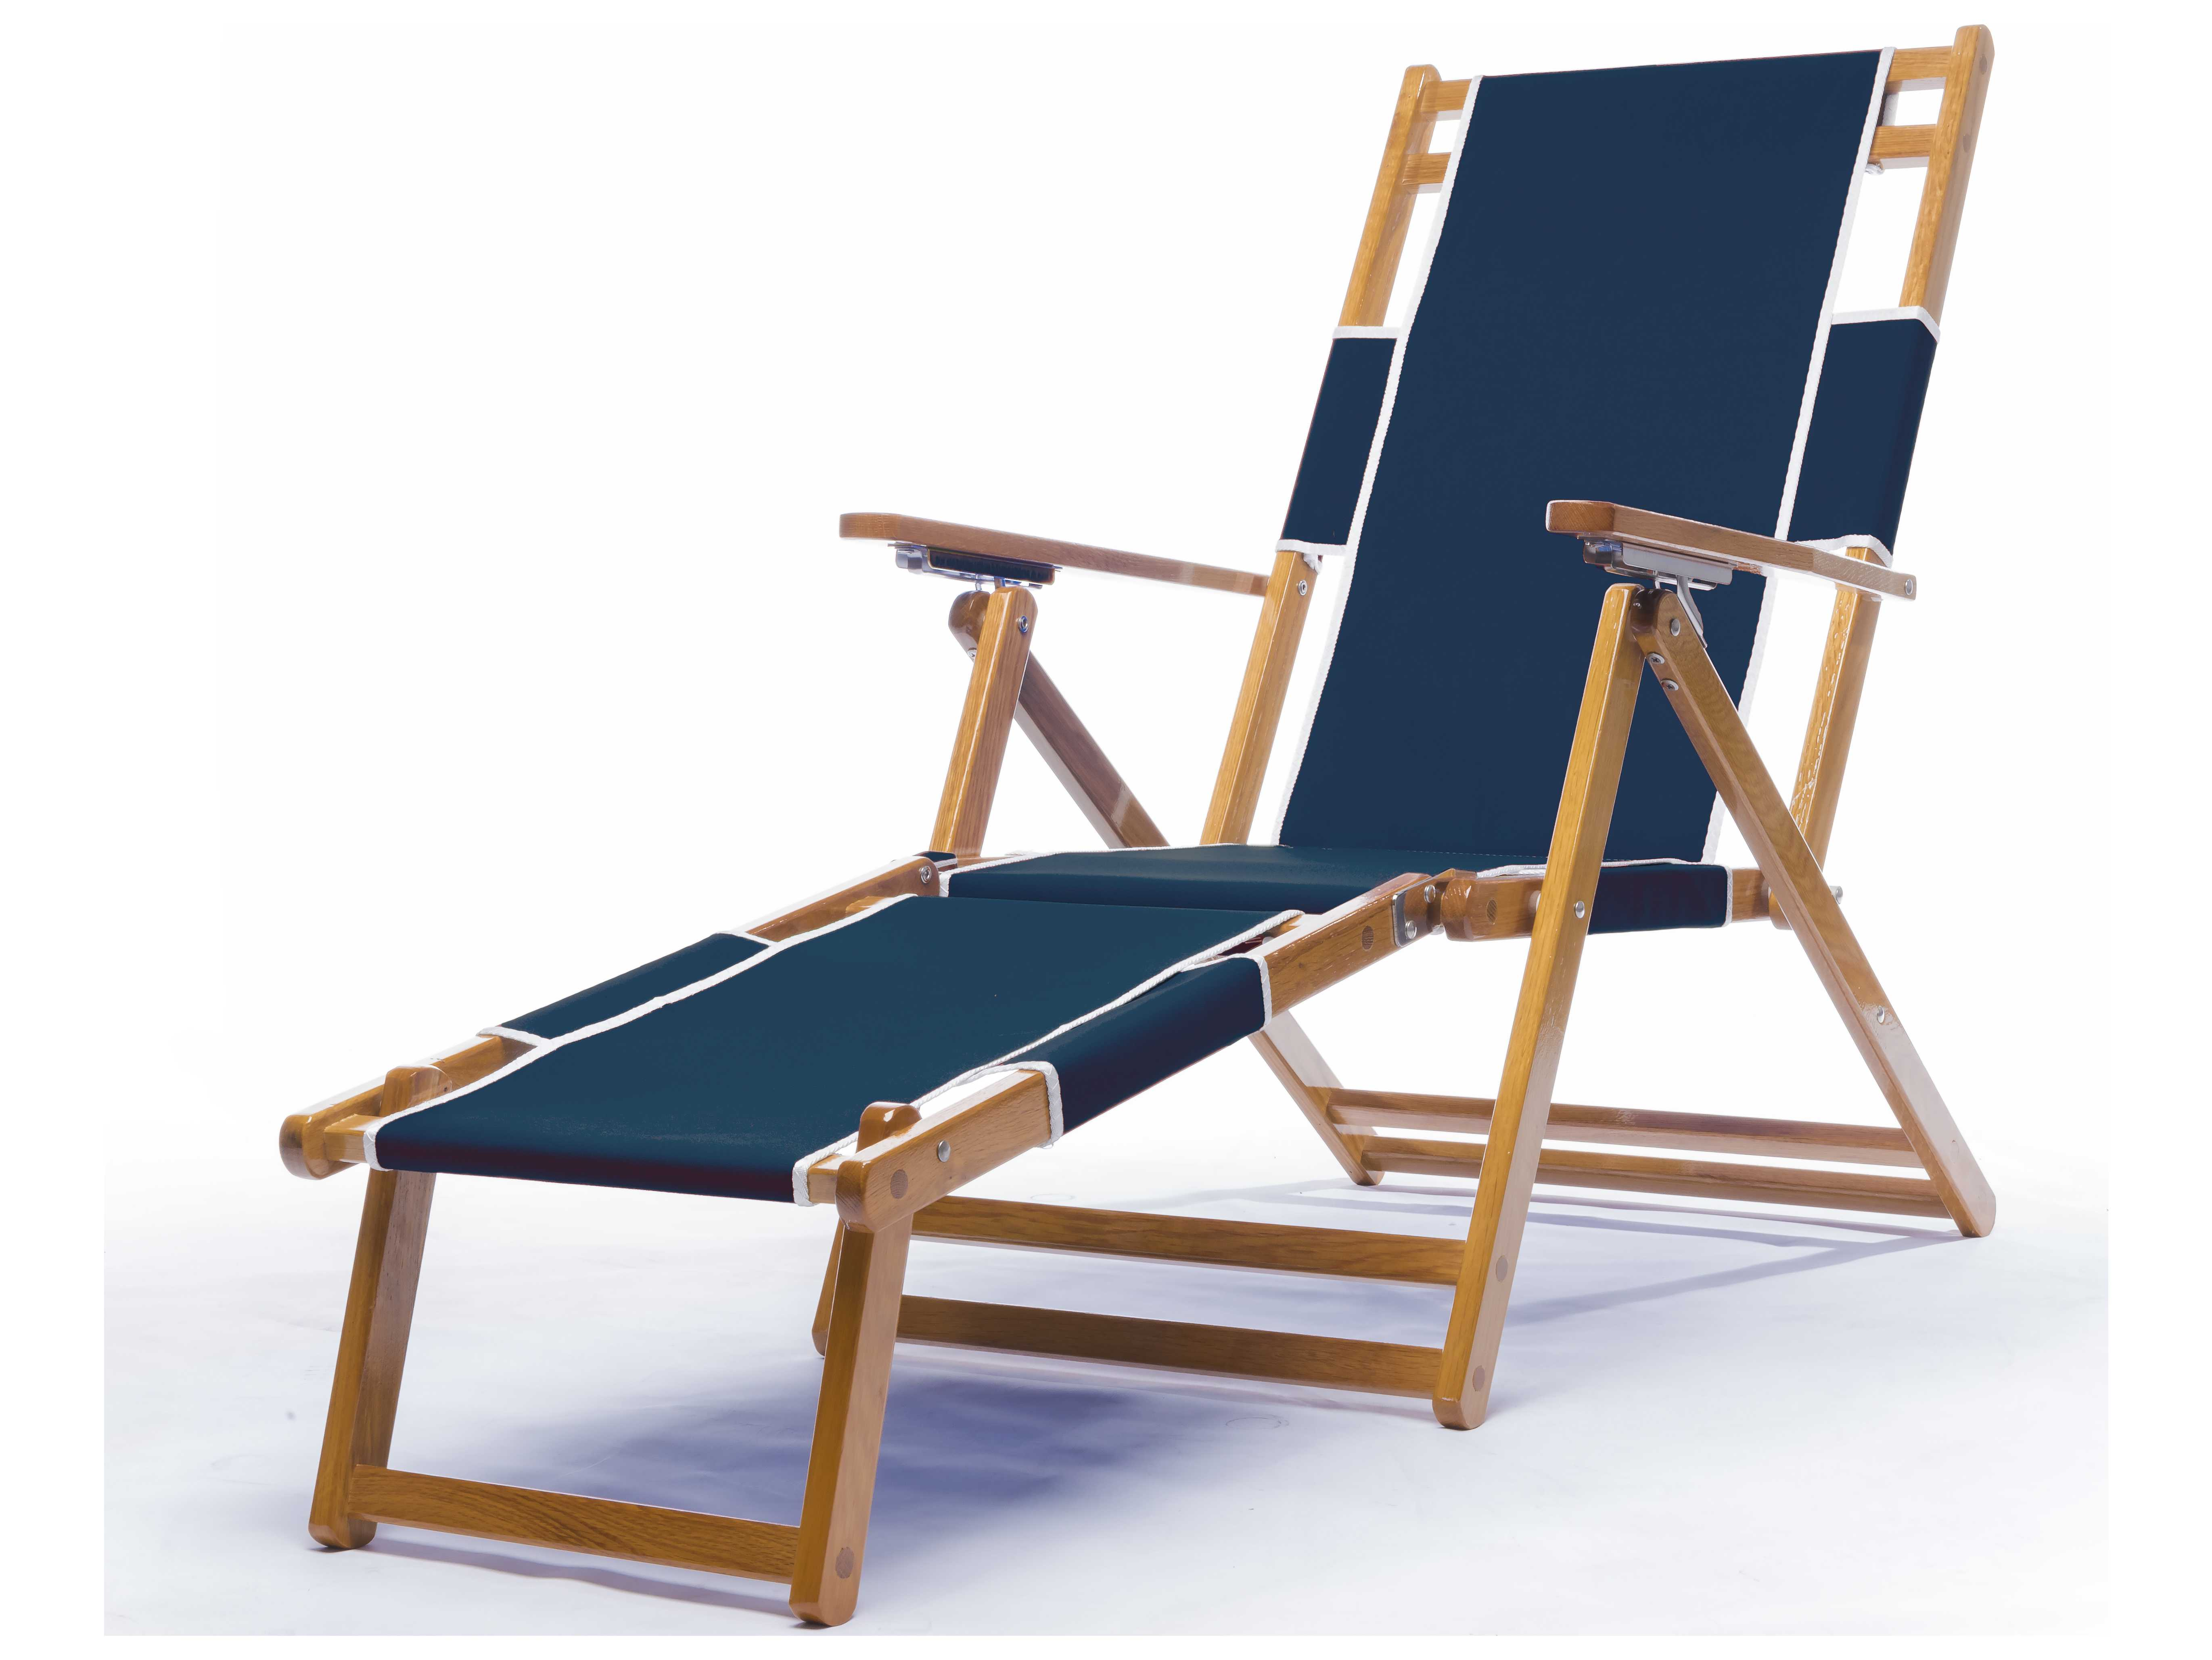 Wooden Lounge Chair Frankford Umbrellas Wooden Beach Lounge Chair With